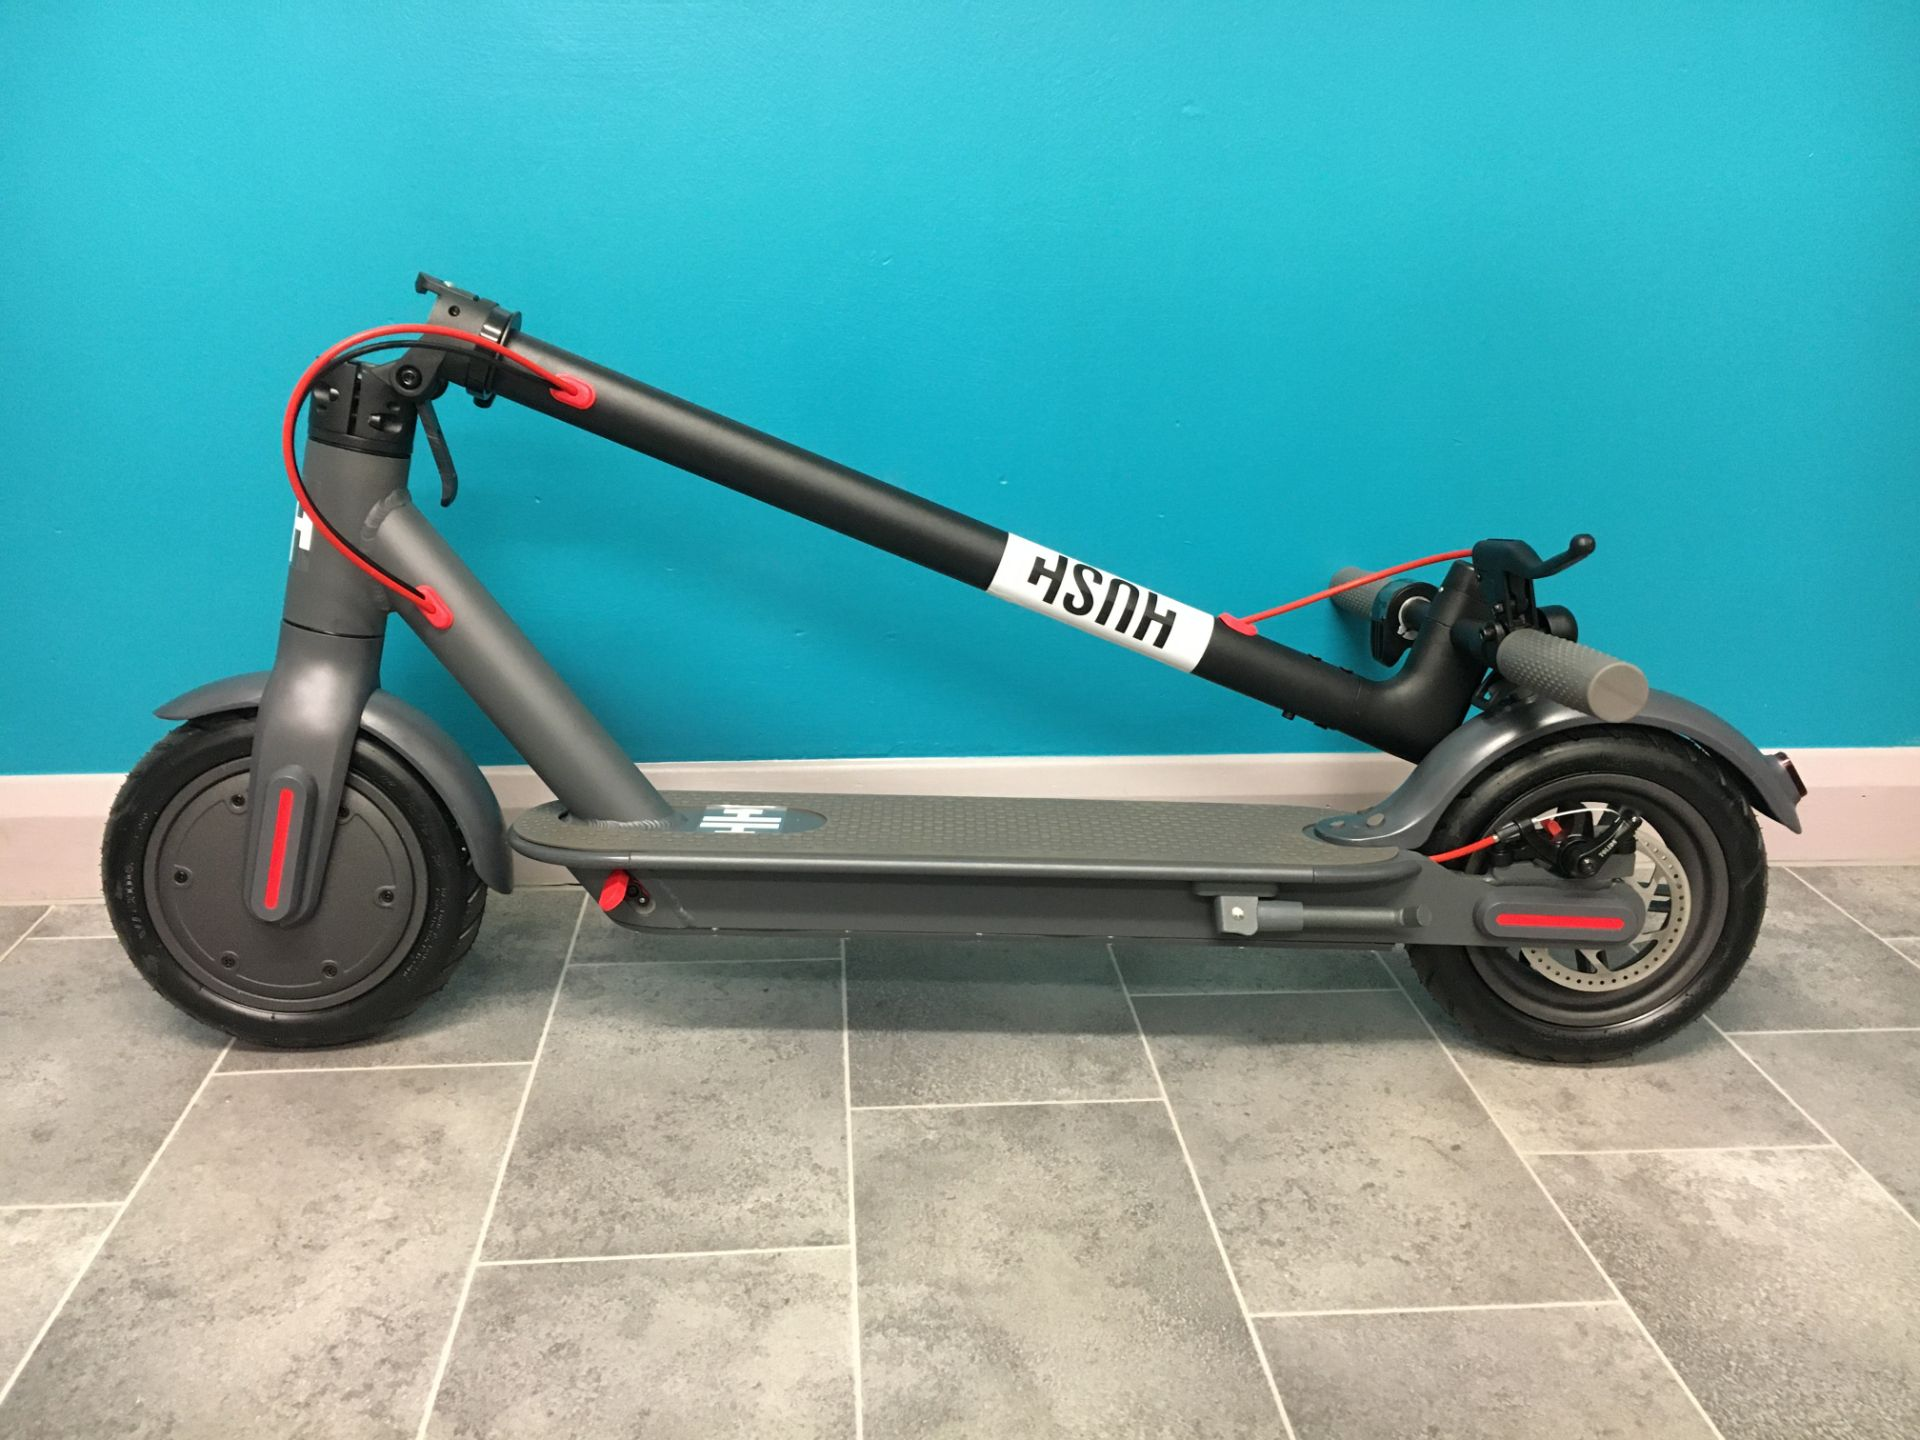 + VAT Brand New Hush Foldable Electric Scooter - Three Speeds - Max Speed 25km/h - ABS Disc - Image 2 of 4